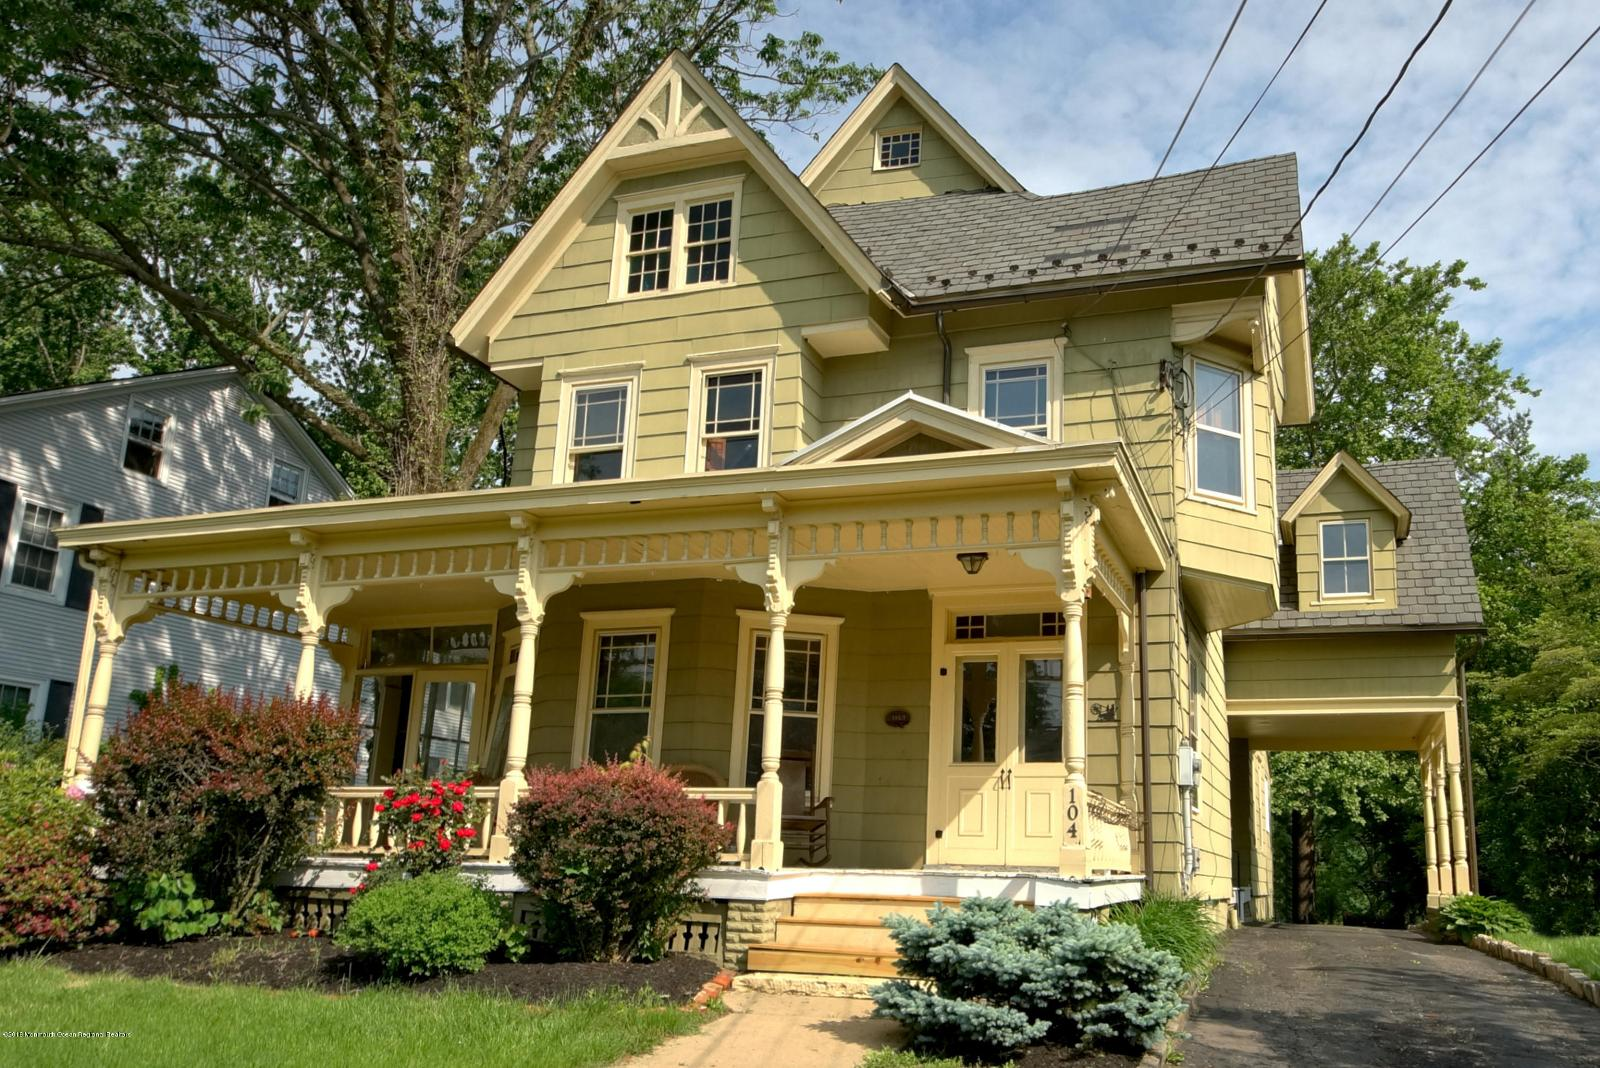 Homes for Sale in Allentown NJ — Allentown Real Estate — ZipRealty